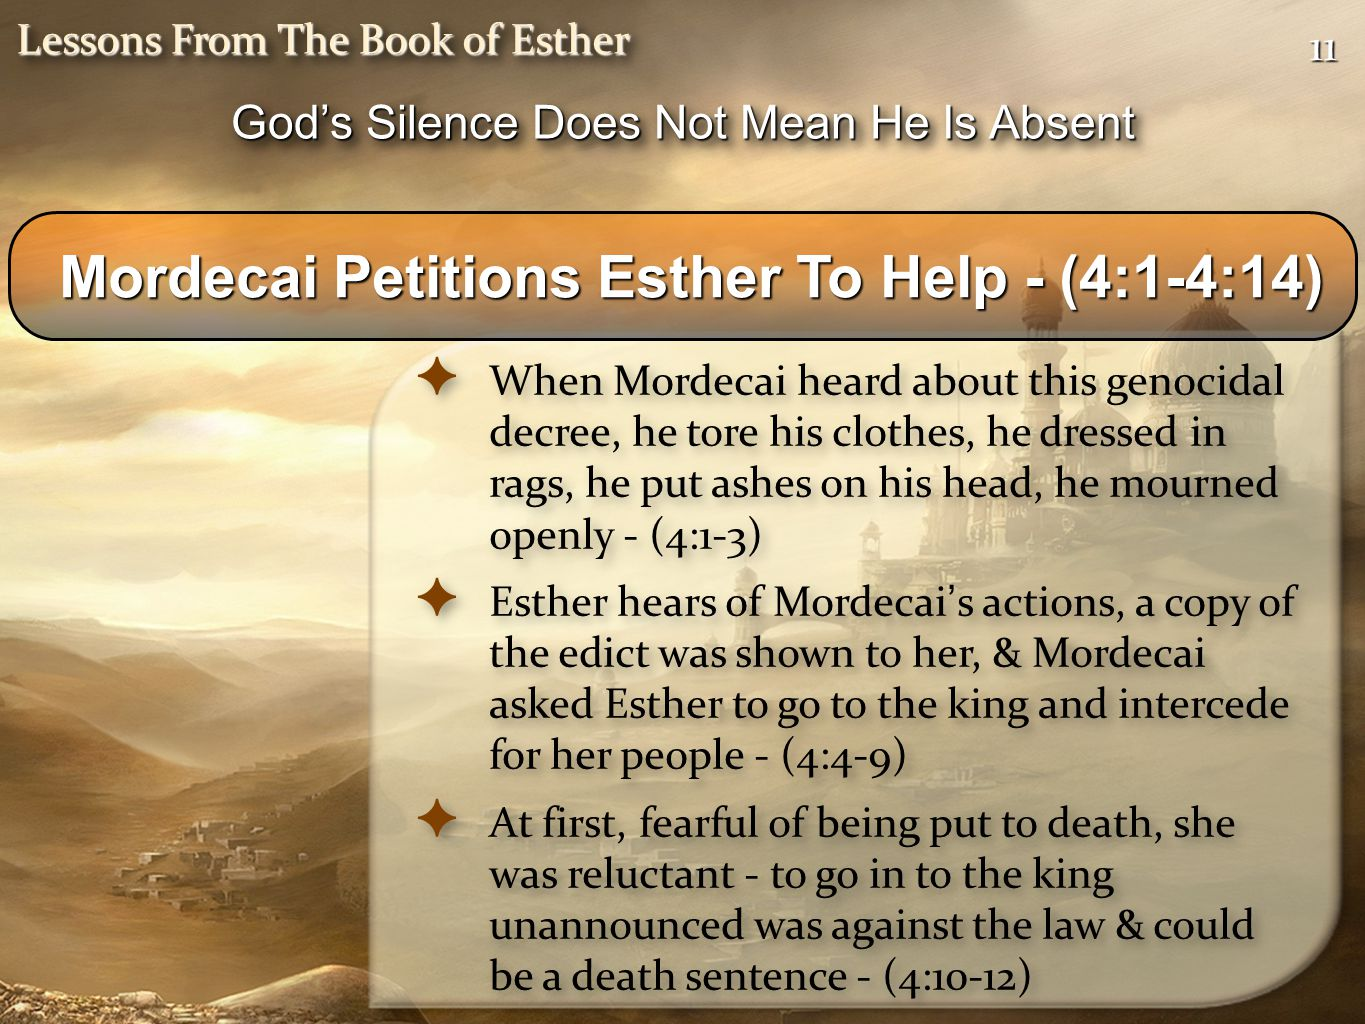 Mordecai Petitions Esther To Help - (4:1-4:14)